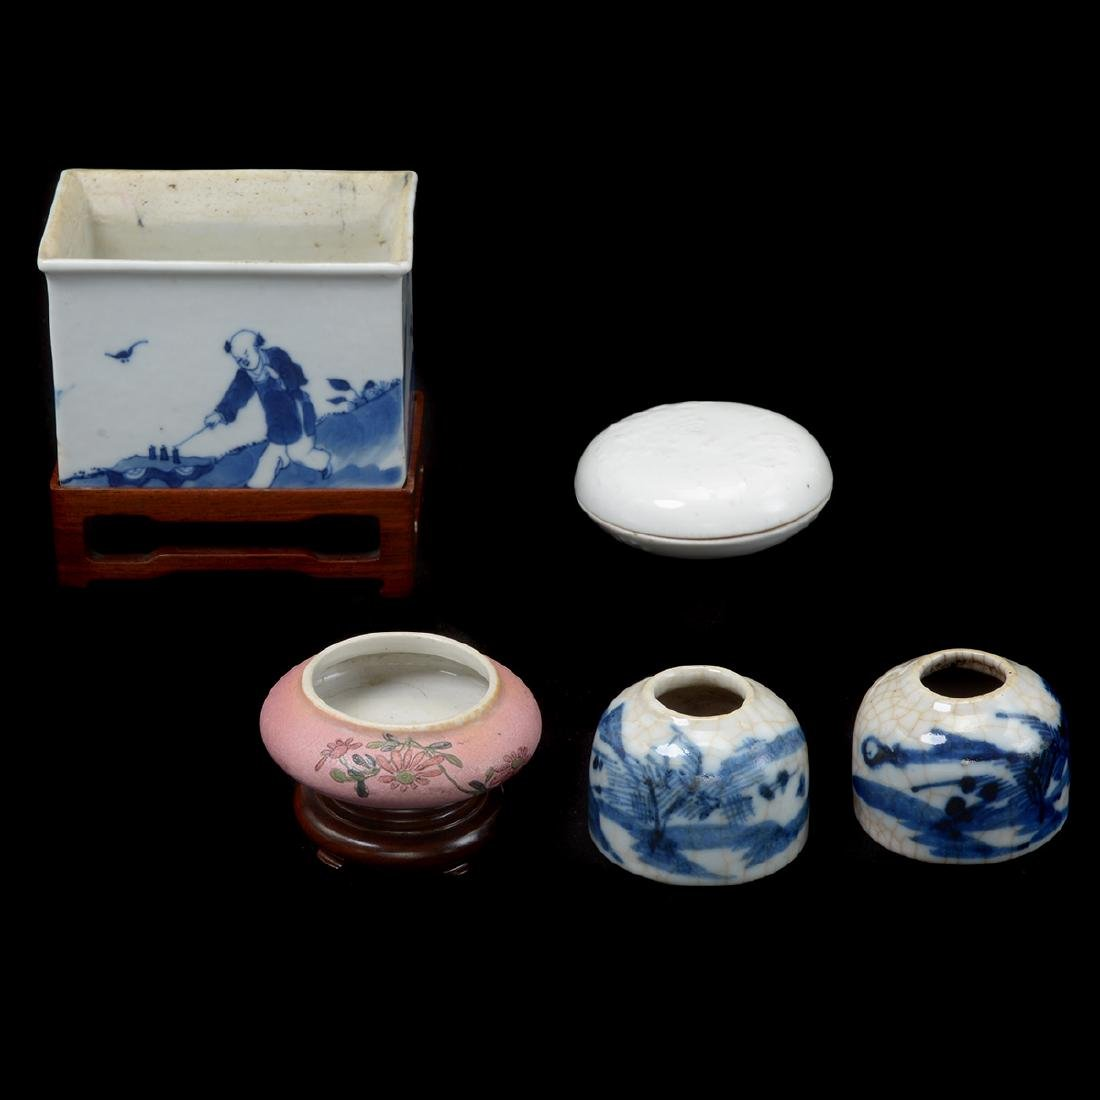 Five Porcelain Scholar's Objects, Late Qing Dynasty